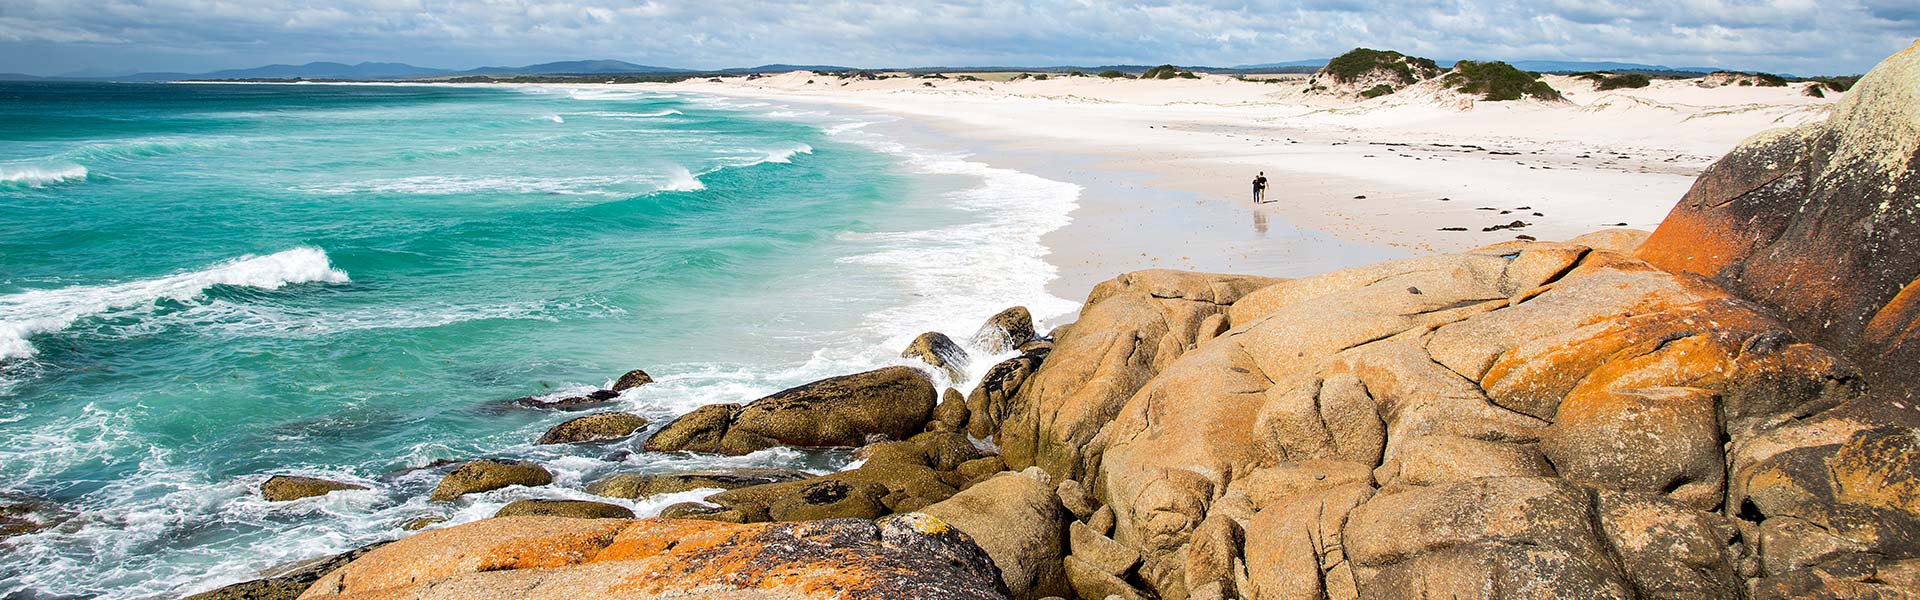 TasVacations Tasmania - Self-Drive Holiday and Group Travel Experts - Accommodation, Holiday Packages, Tours, Attractions